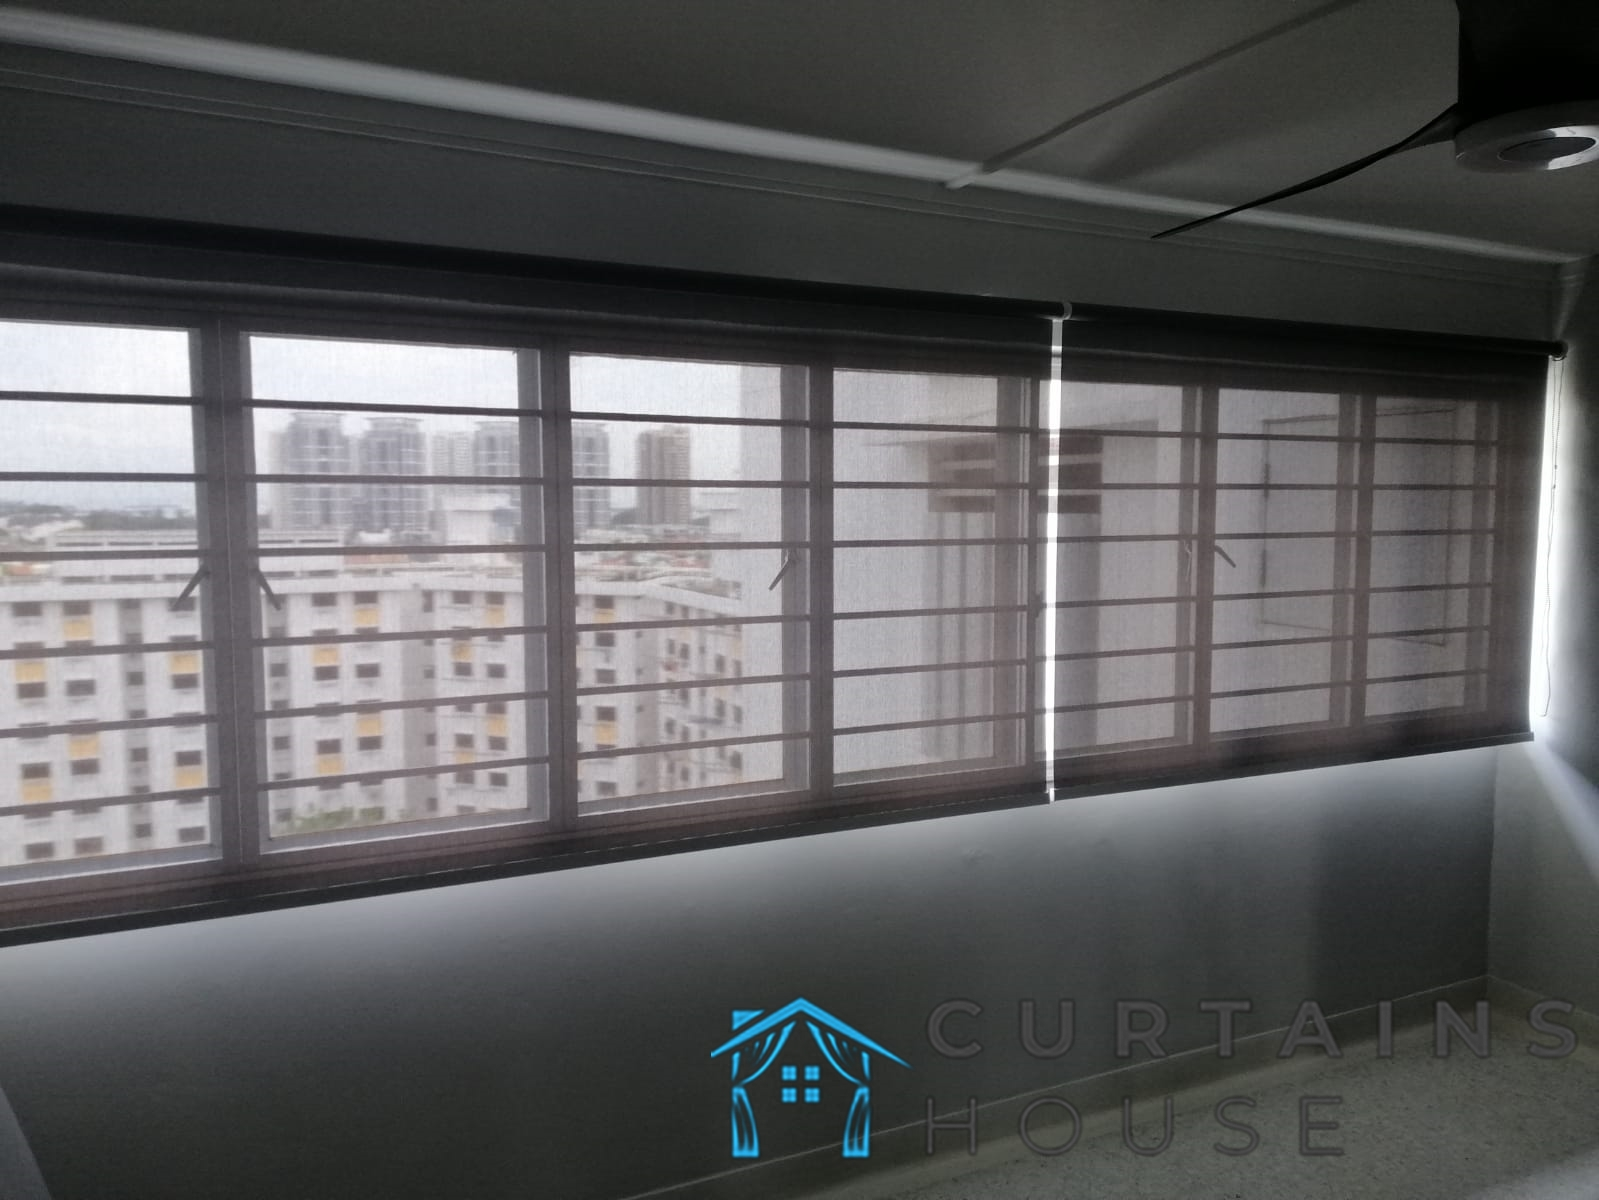 Dim Out Roller Blinds Living Room Blinds Installation Curtains House Singapore HDB – Bedok